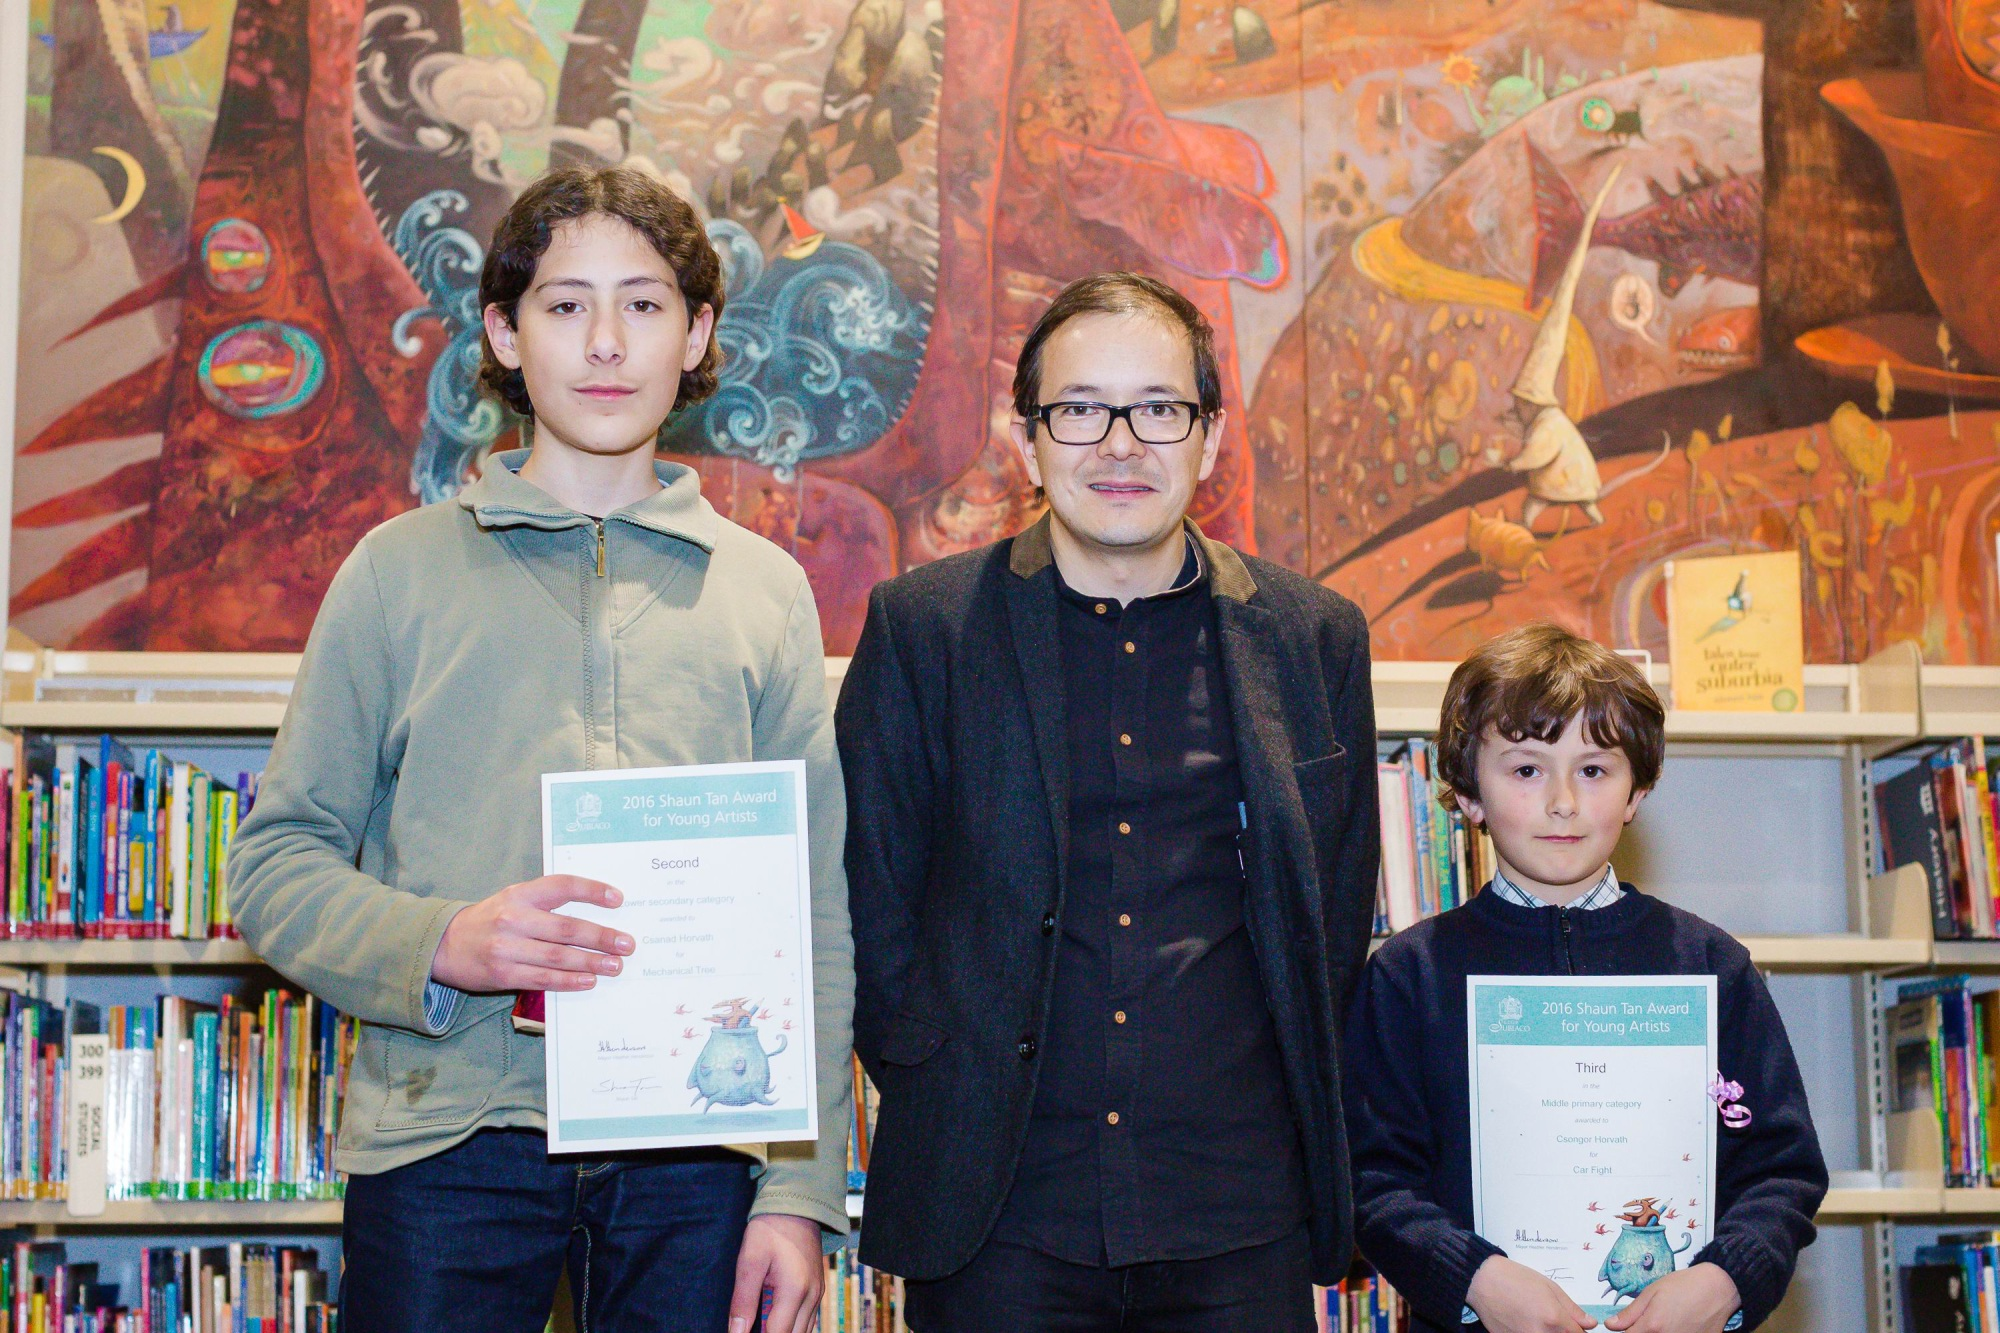 Csanad and Csongor Hovarth with Shaun Tan.